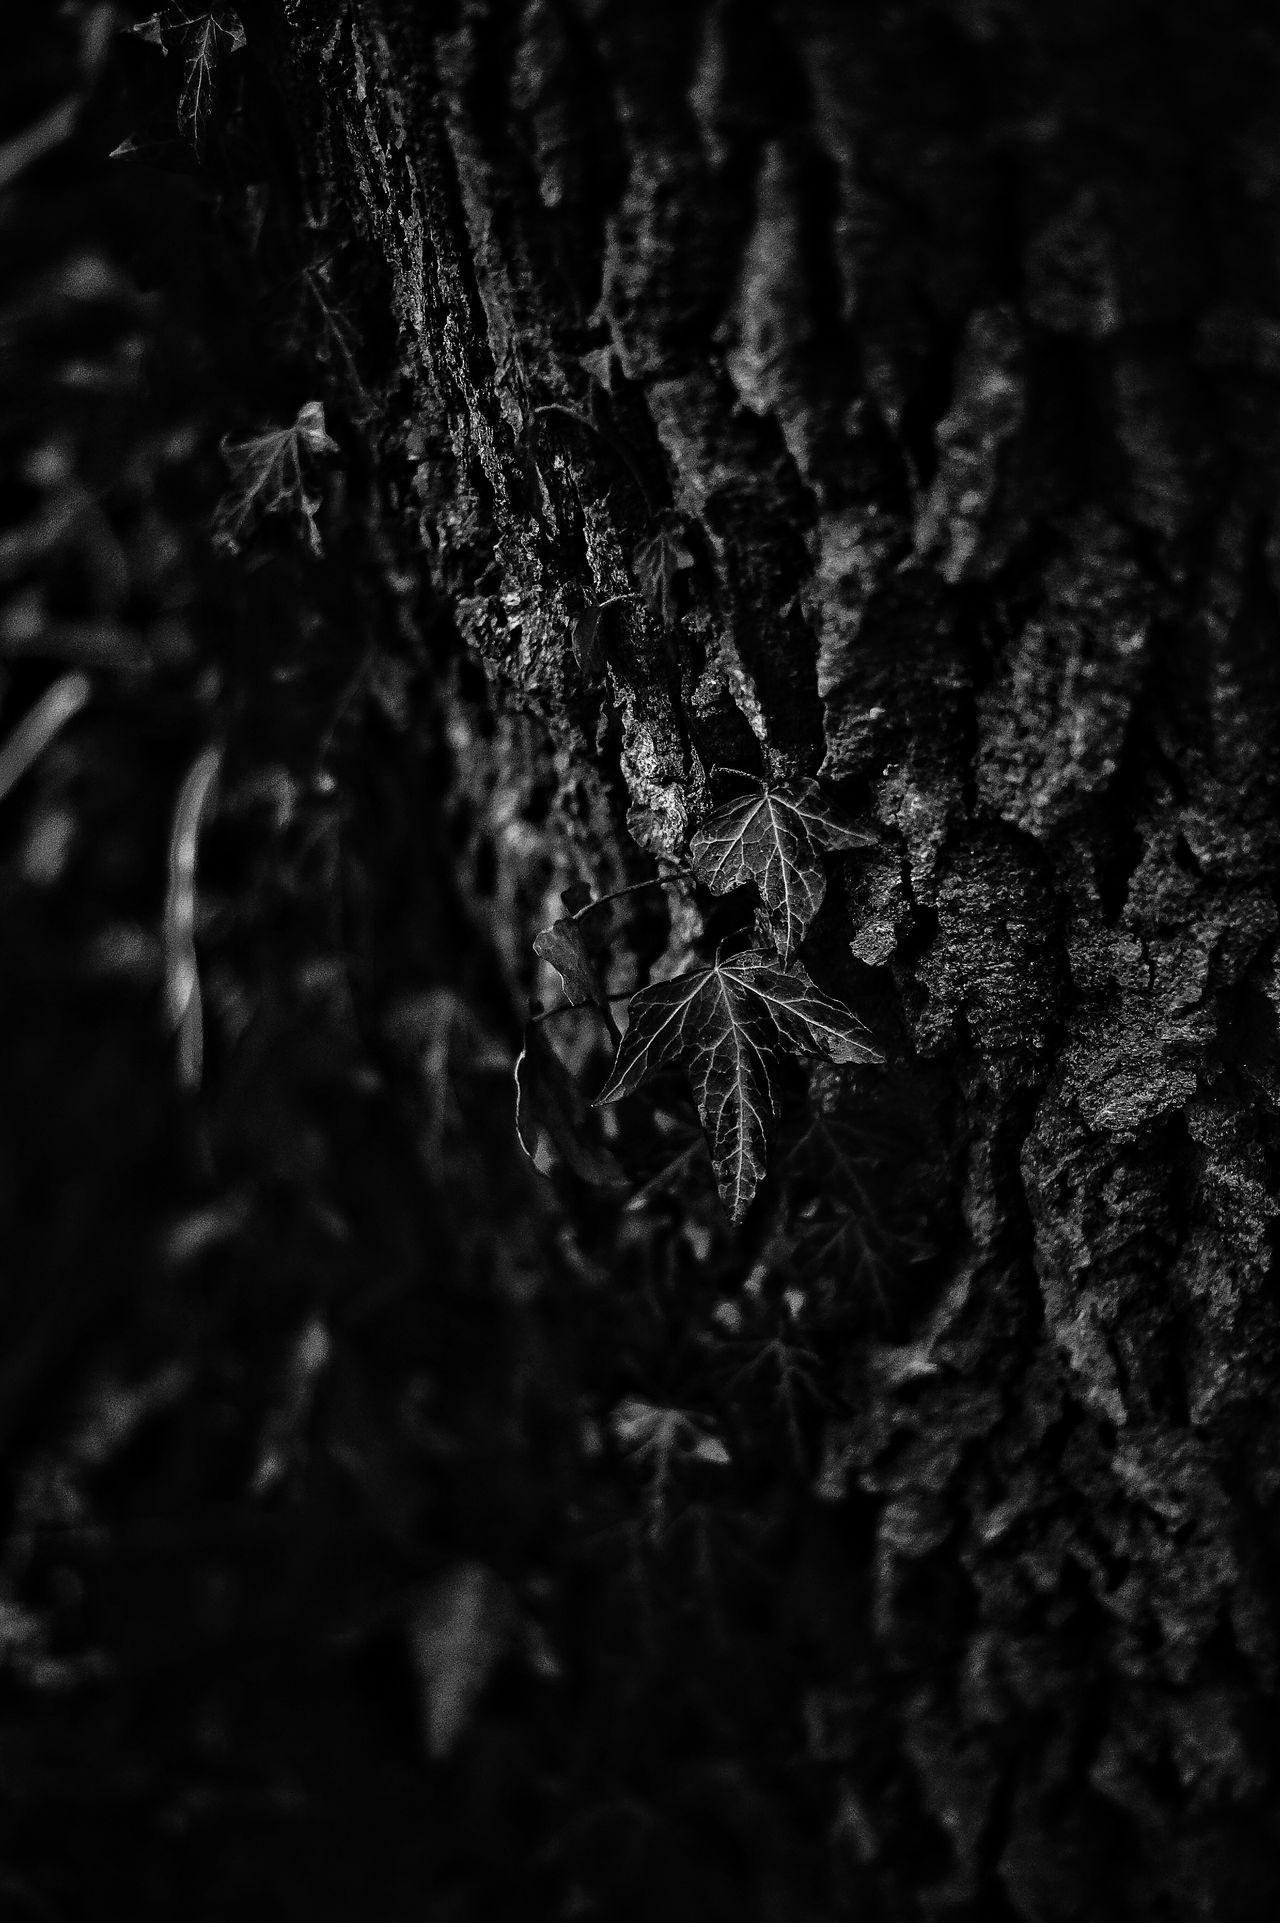 Sonya58 First Eyeem Photo Bokeh Forest Blackandwhite Photography Blackandwhite Trees Mysthical Sony A58 Alpha58 Shady